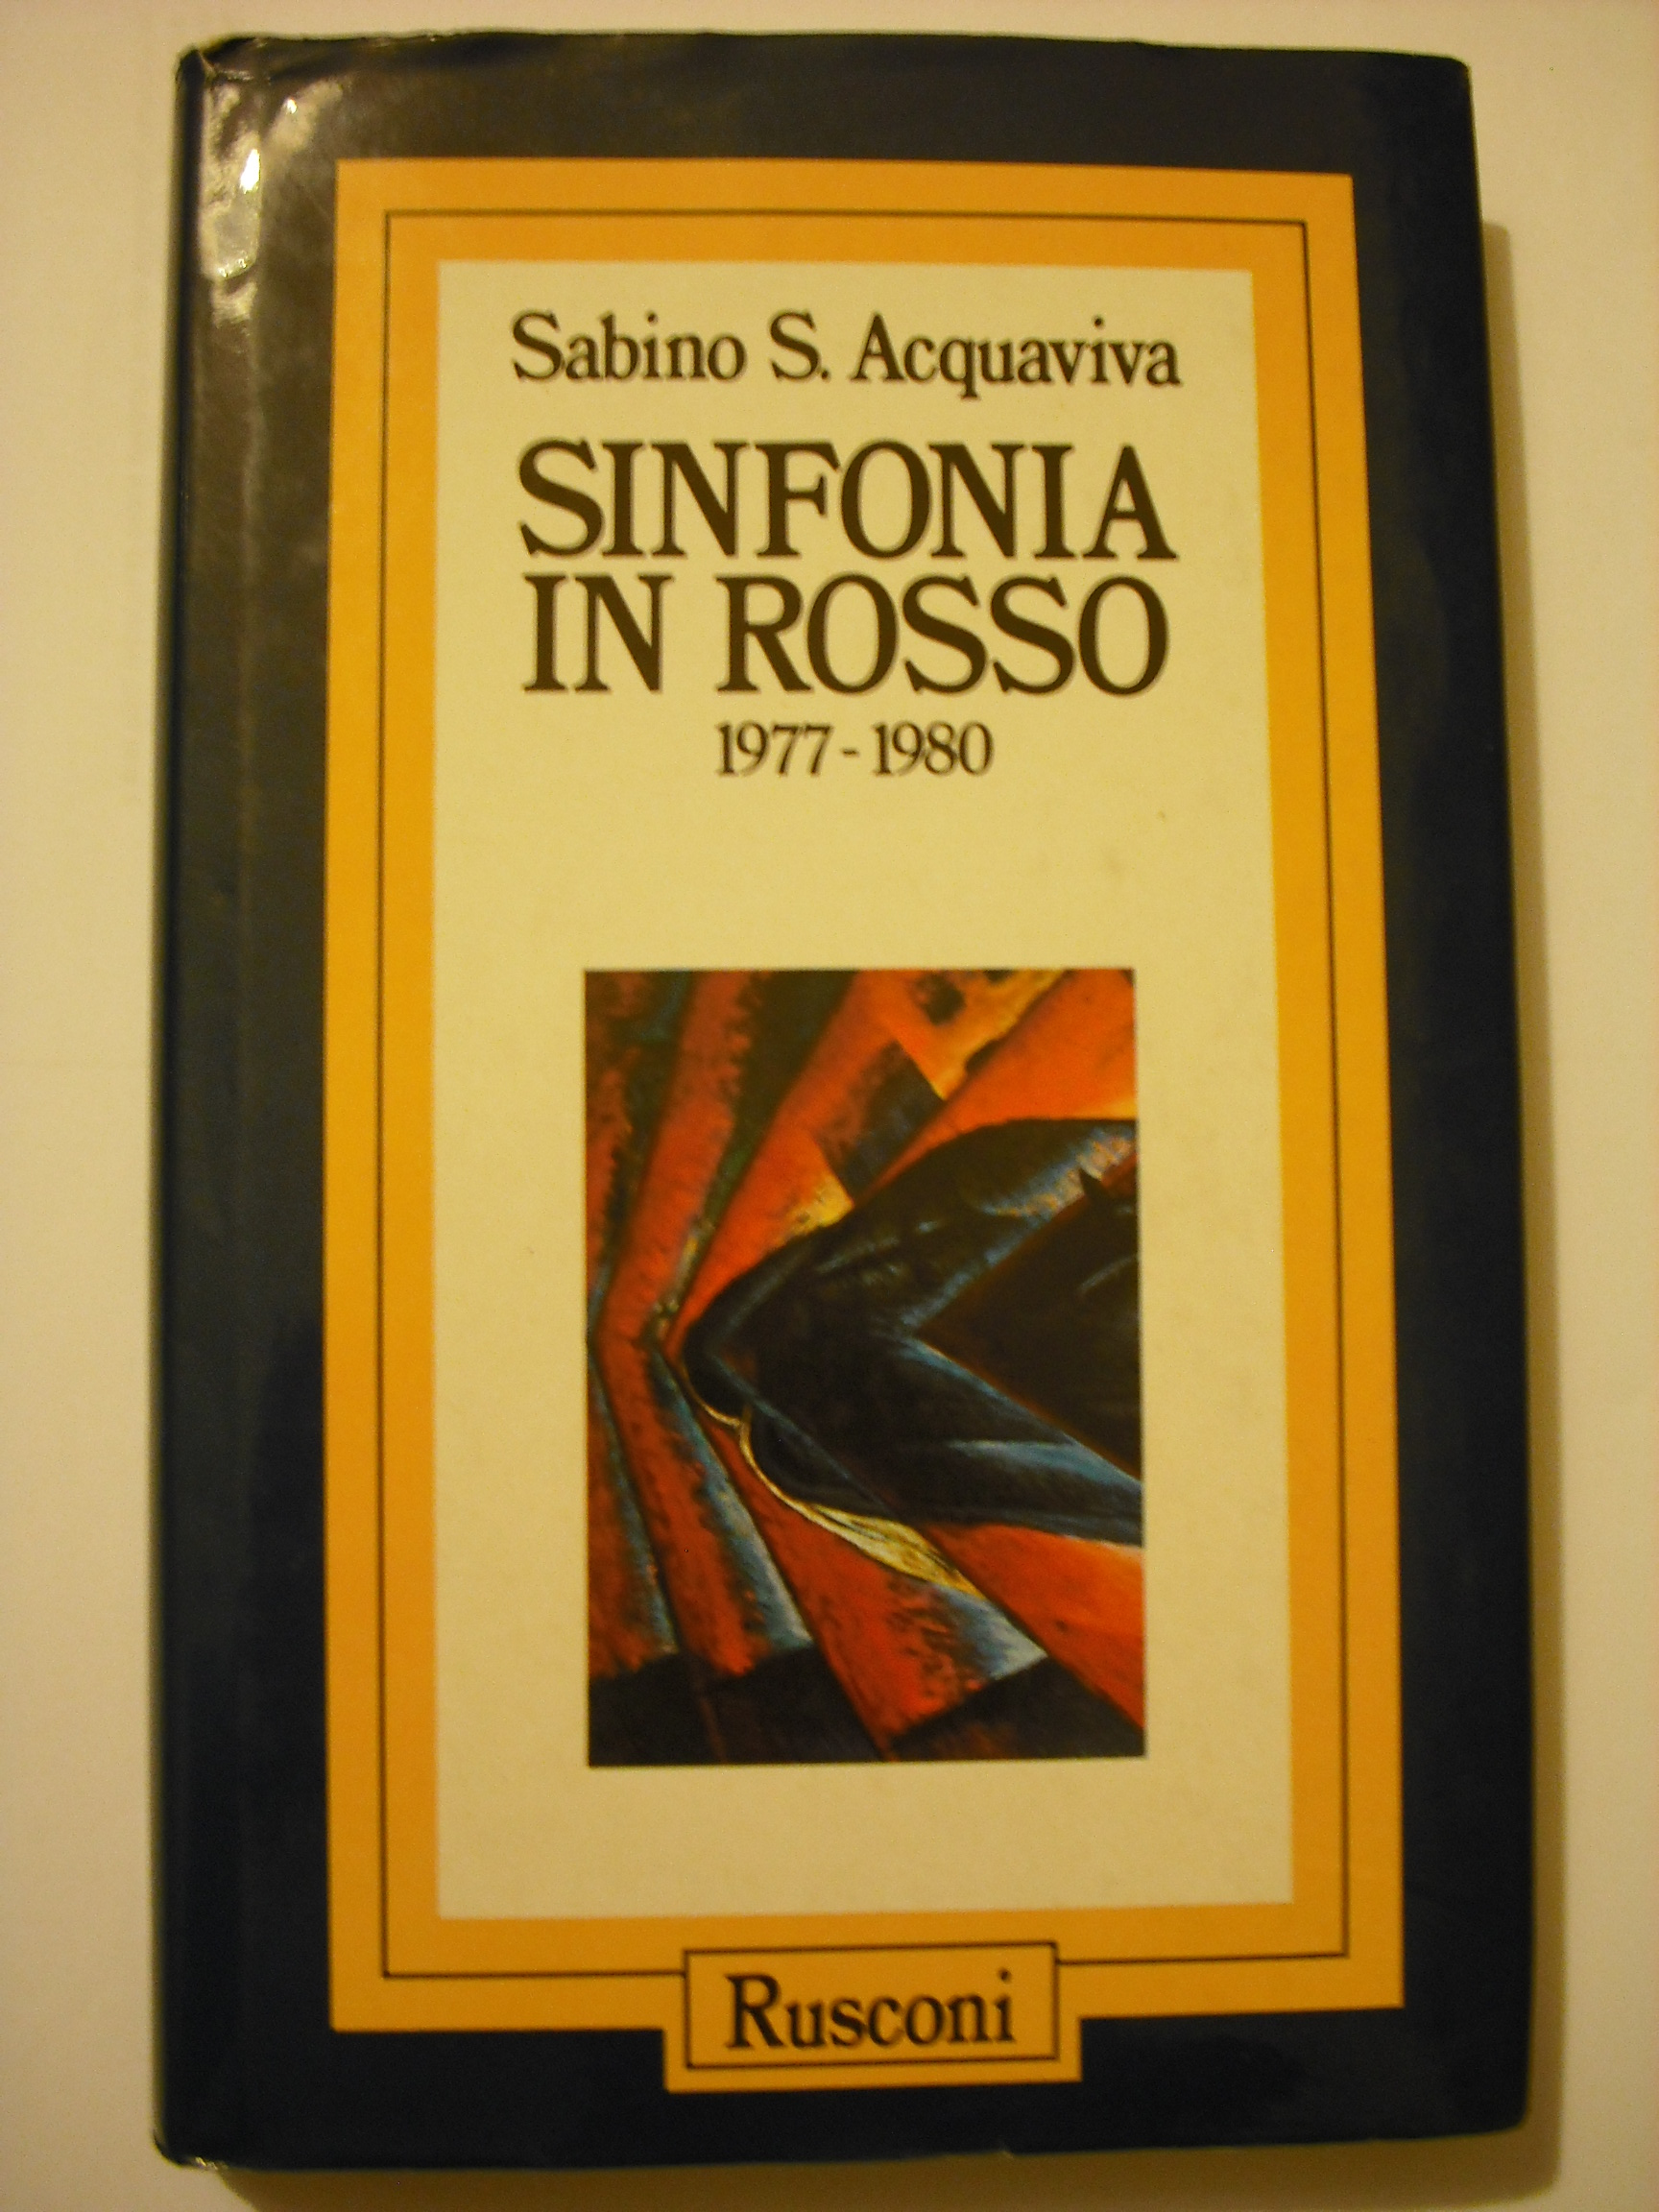 Sinfonia in rosso